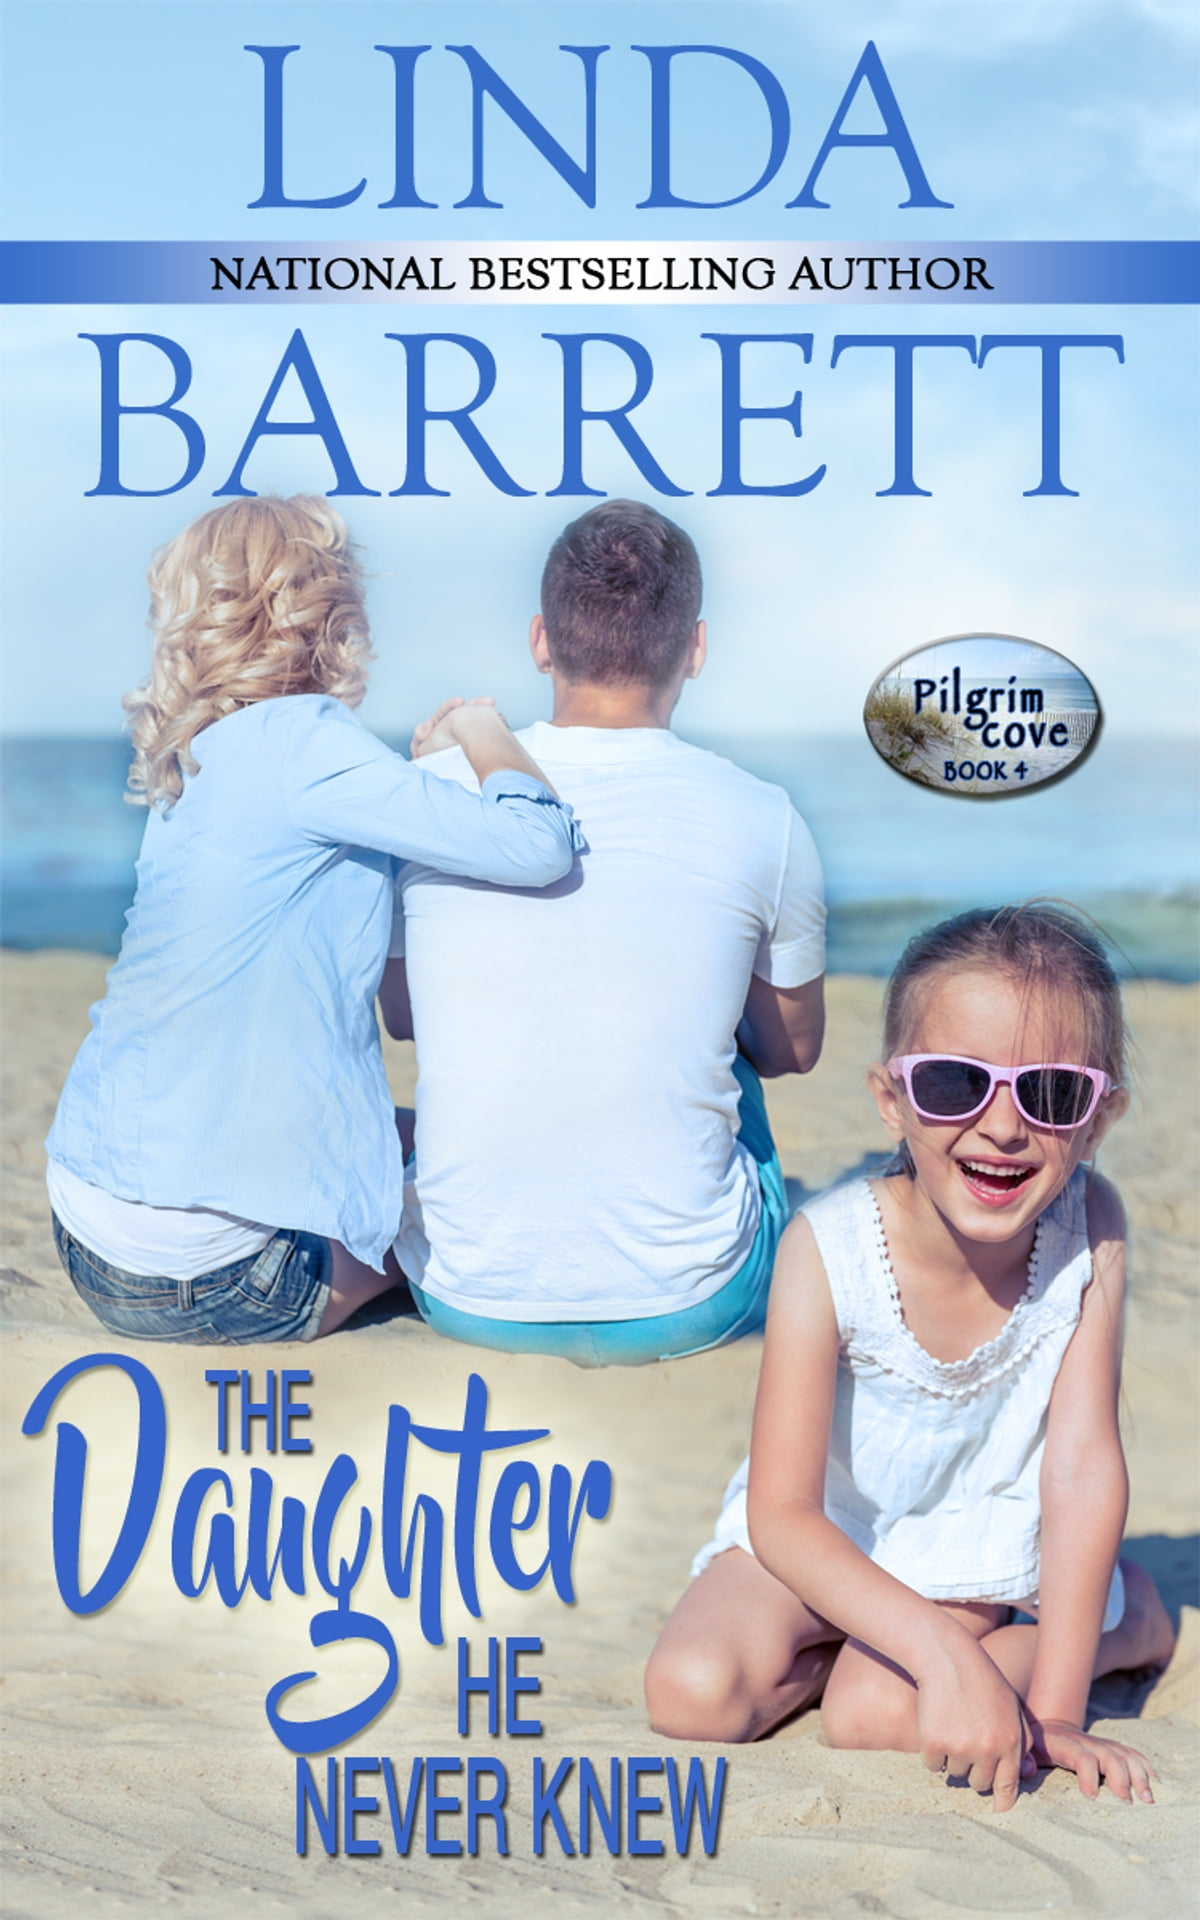 The daughter he never knew ebook by linda barrett 9781945830013 the daughter he never knew ebook by linda barrett 9781945830013 rakuten kobo fandeluxe Document